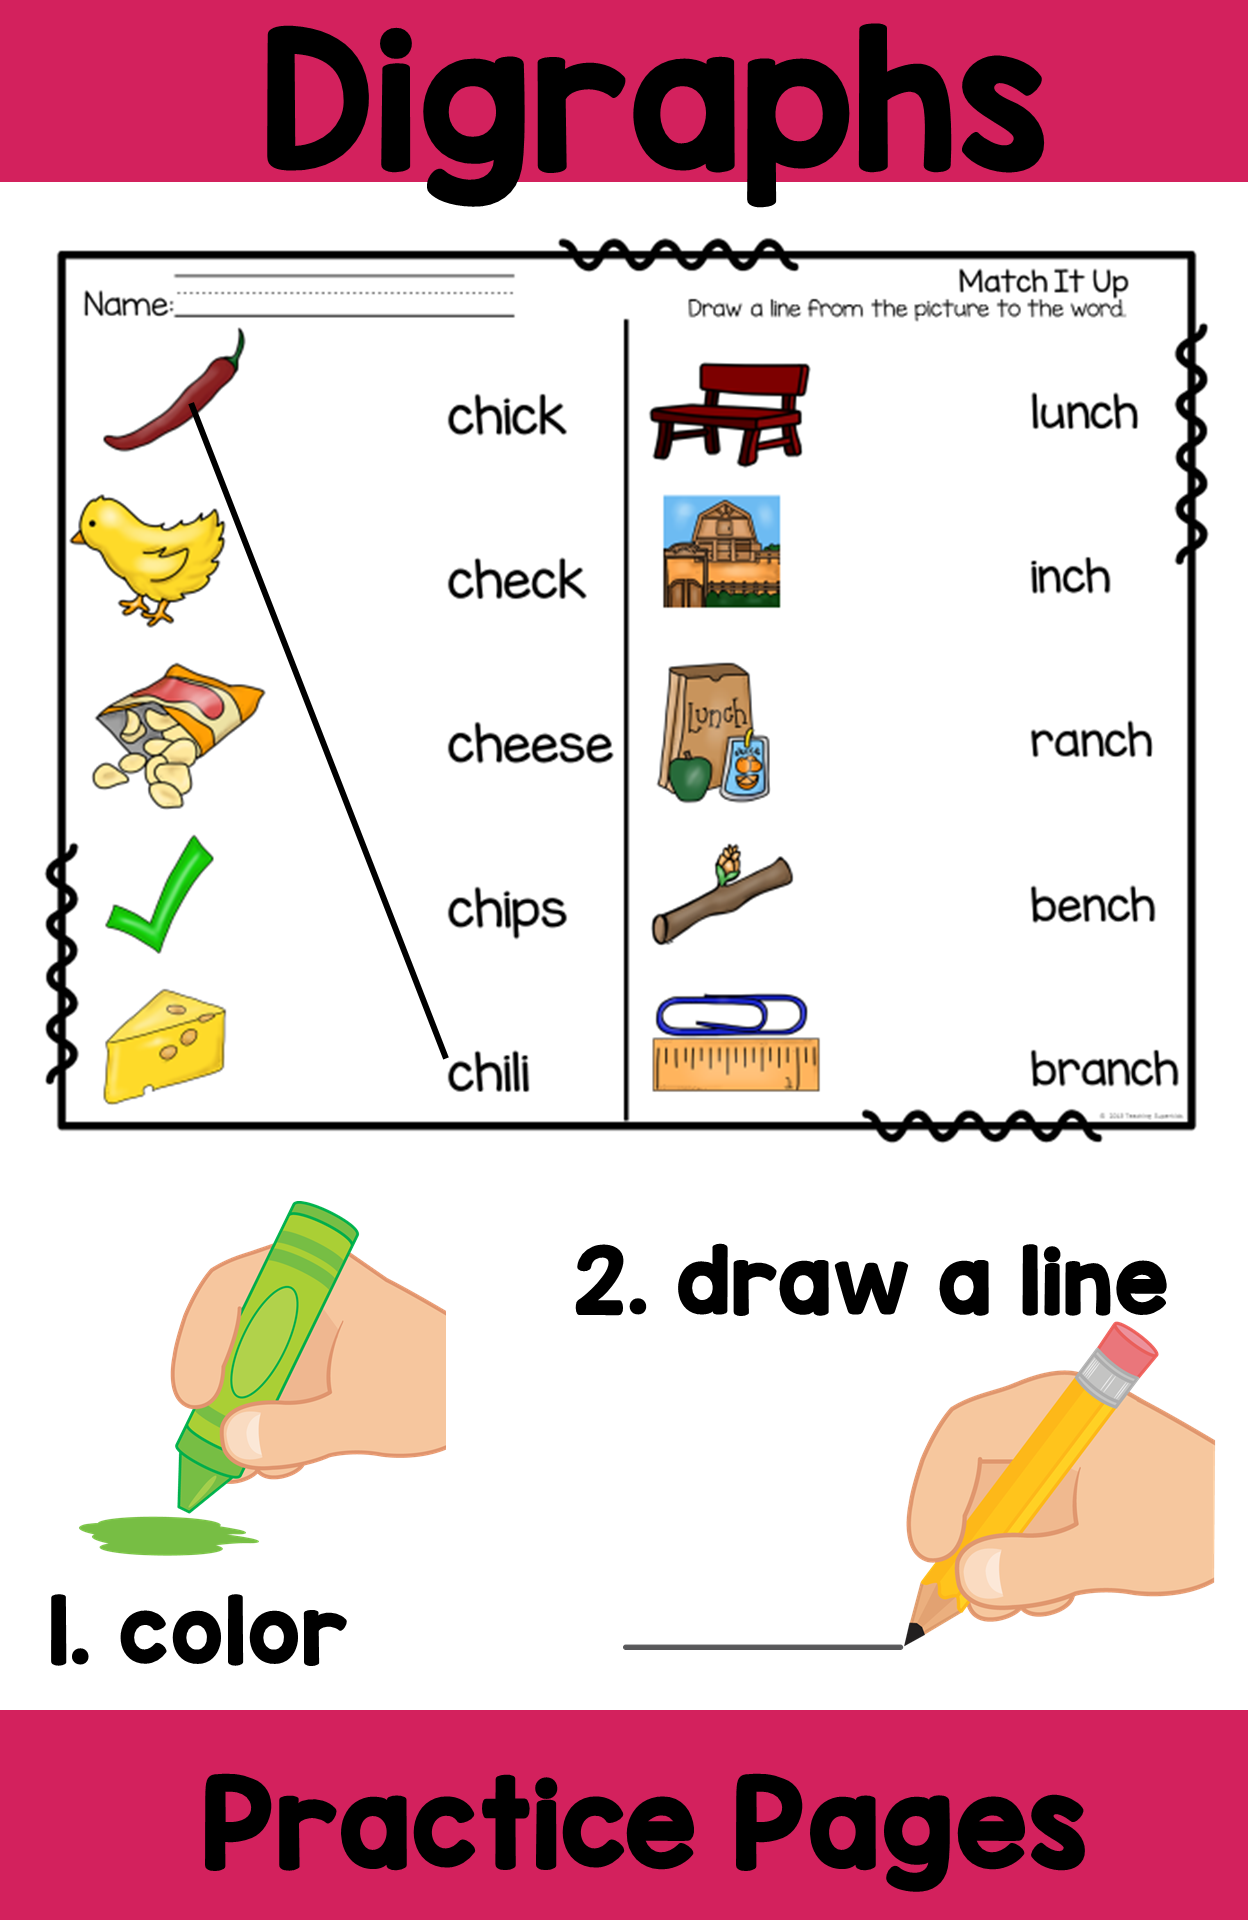 Digraphs Ch Practice Pages Color And Draw A Line To Connect The Picture With The Word Digraph Digraphs Activities Teacher Created Resources [ 1920 x 1248 Pixel ]